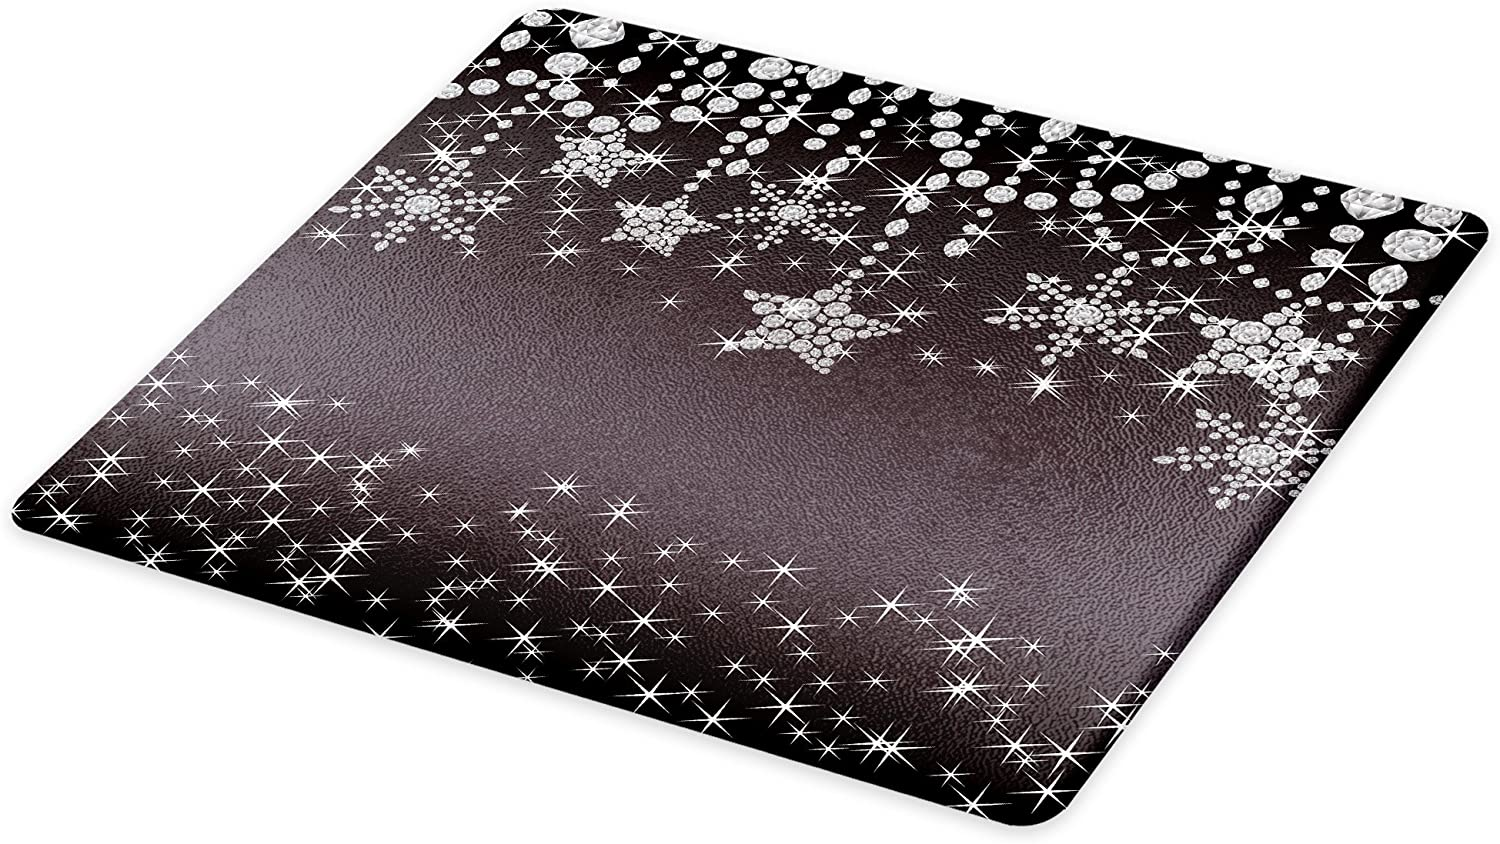 Lunarable Diamonds Cutting Board, Xmas Holiday Celebration Theme with Abstract Star and Snowflake Motifs, Decorative Tempered Glass Cutting and Serving Board, Large Size, Coconut